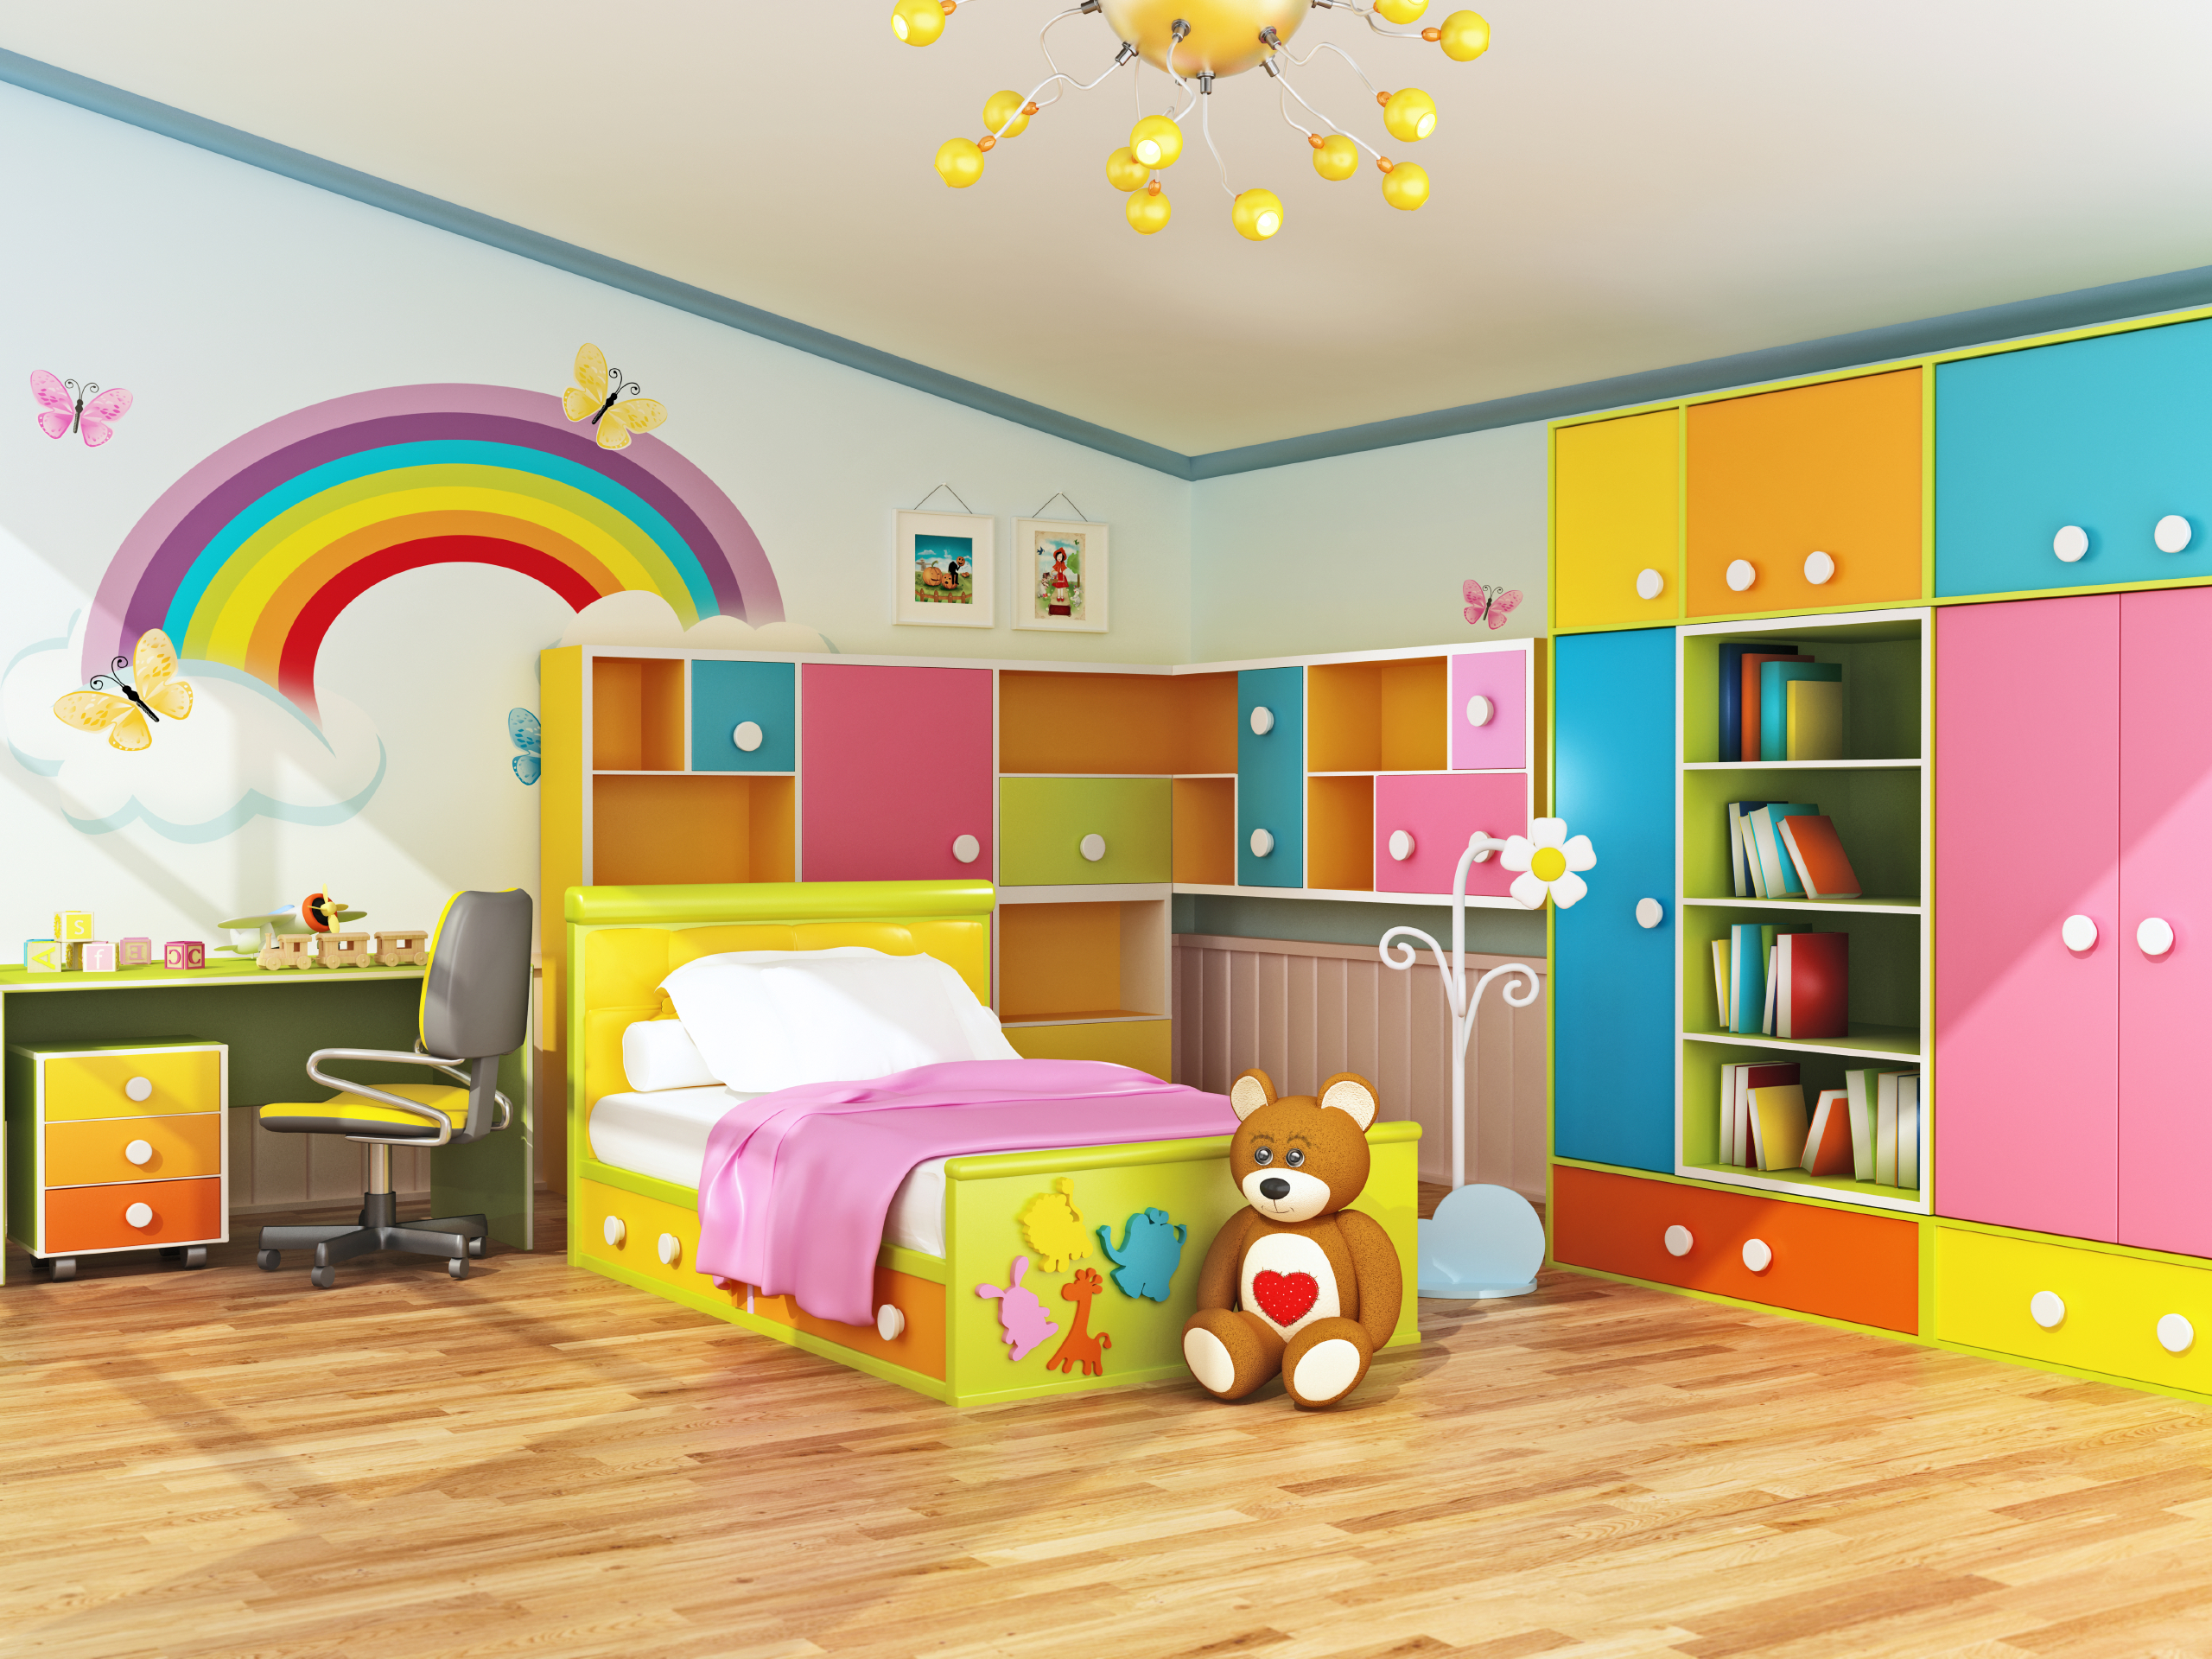 Plan Ahead When Decorating Kids Bedrooms  RISMedias Housecall